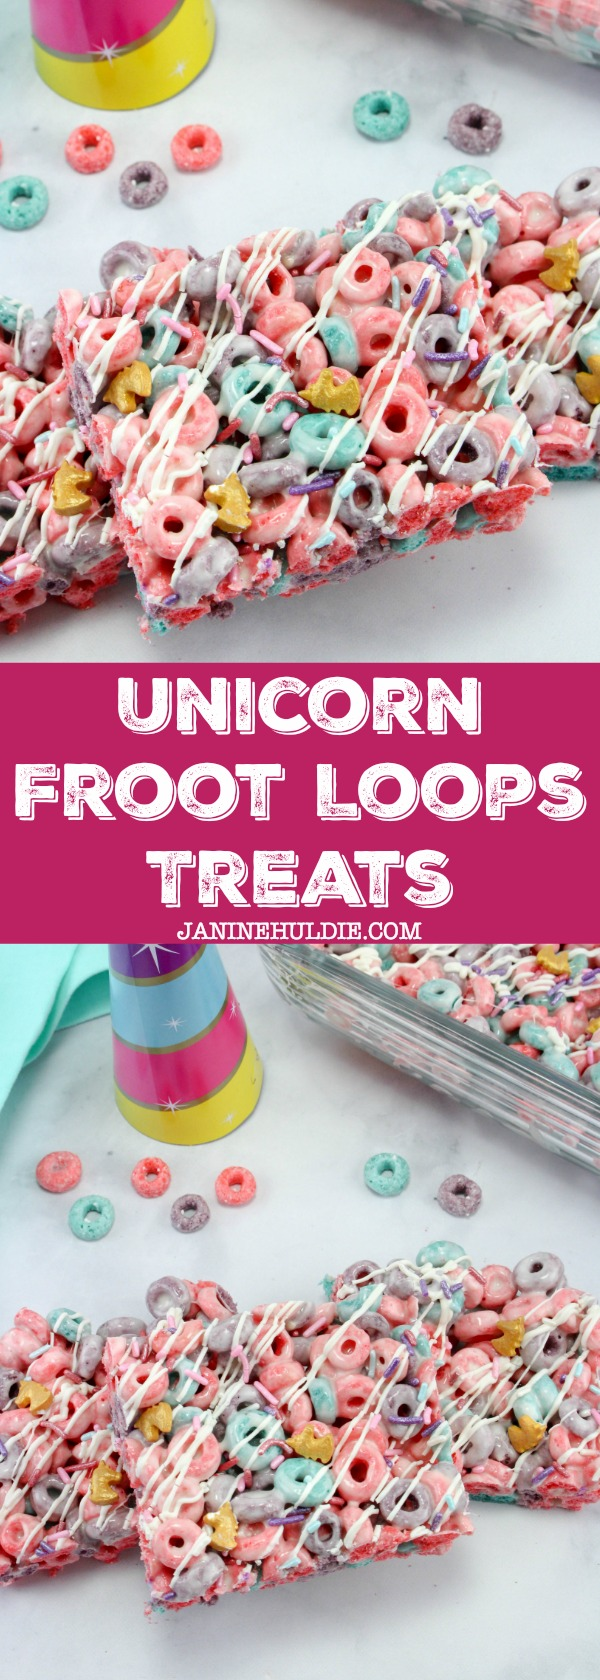 Unicorn Froot Loops Treats, This Mom's Confessions